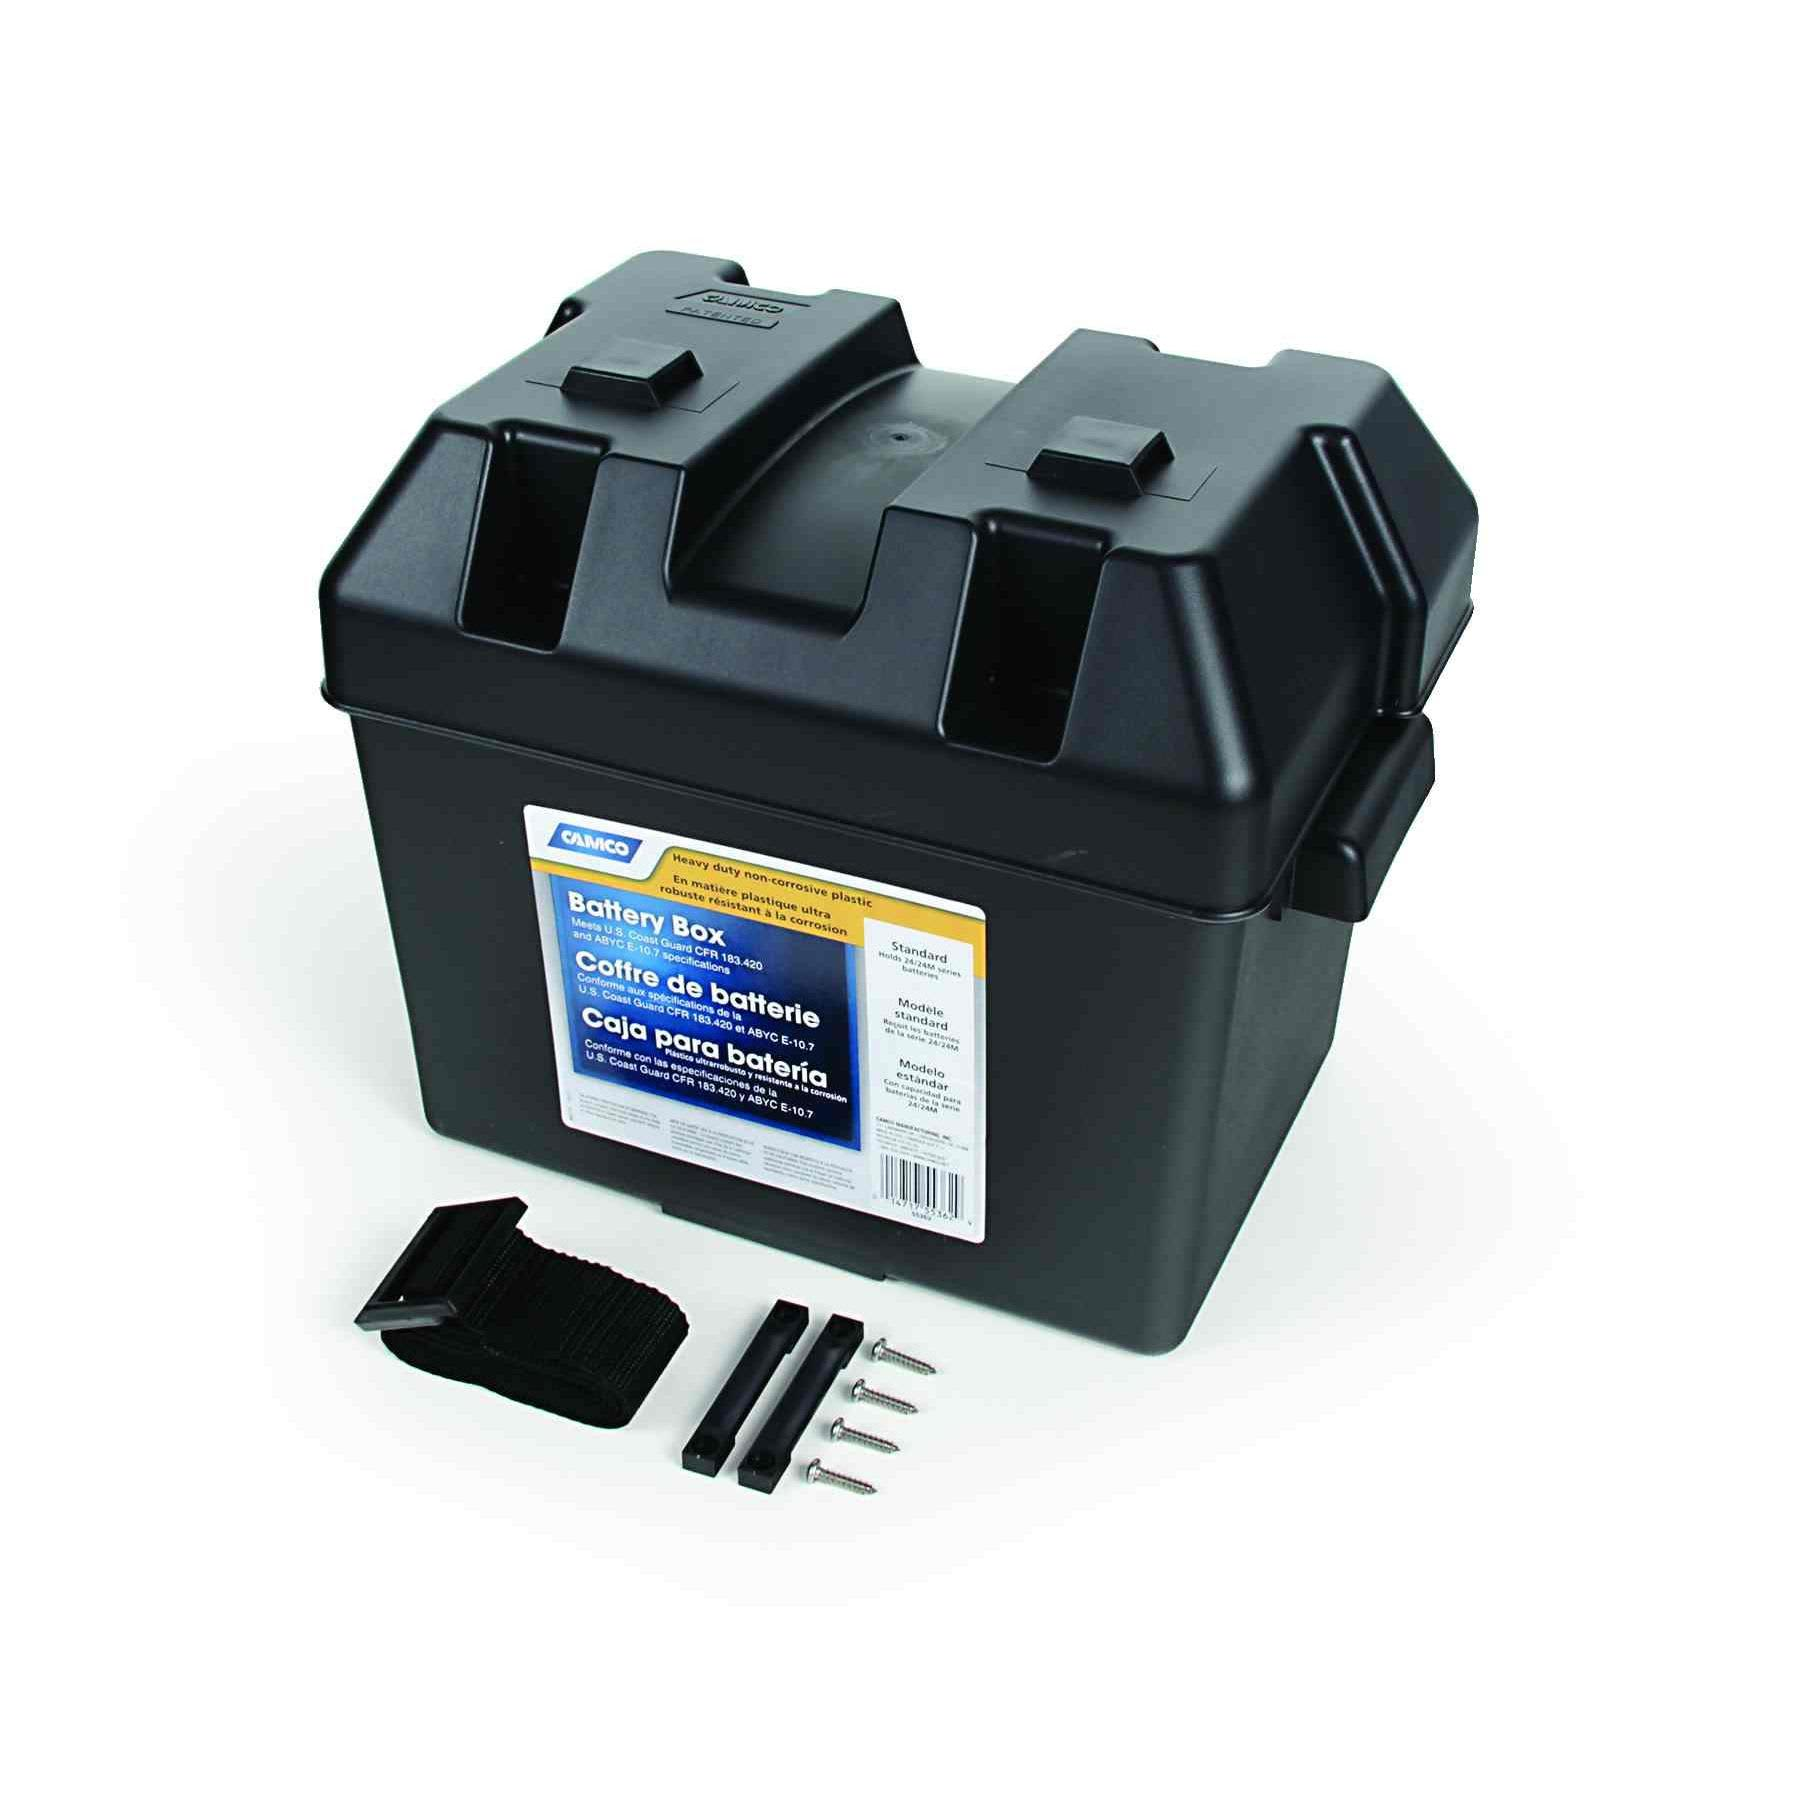 Snap Top Battery Box for Automotive Marine and RV Batteries Travel Heavy Duty